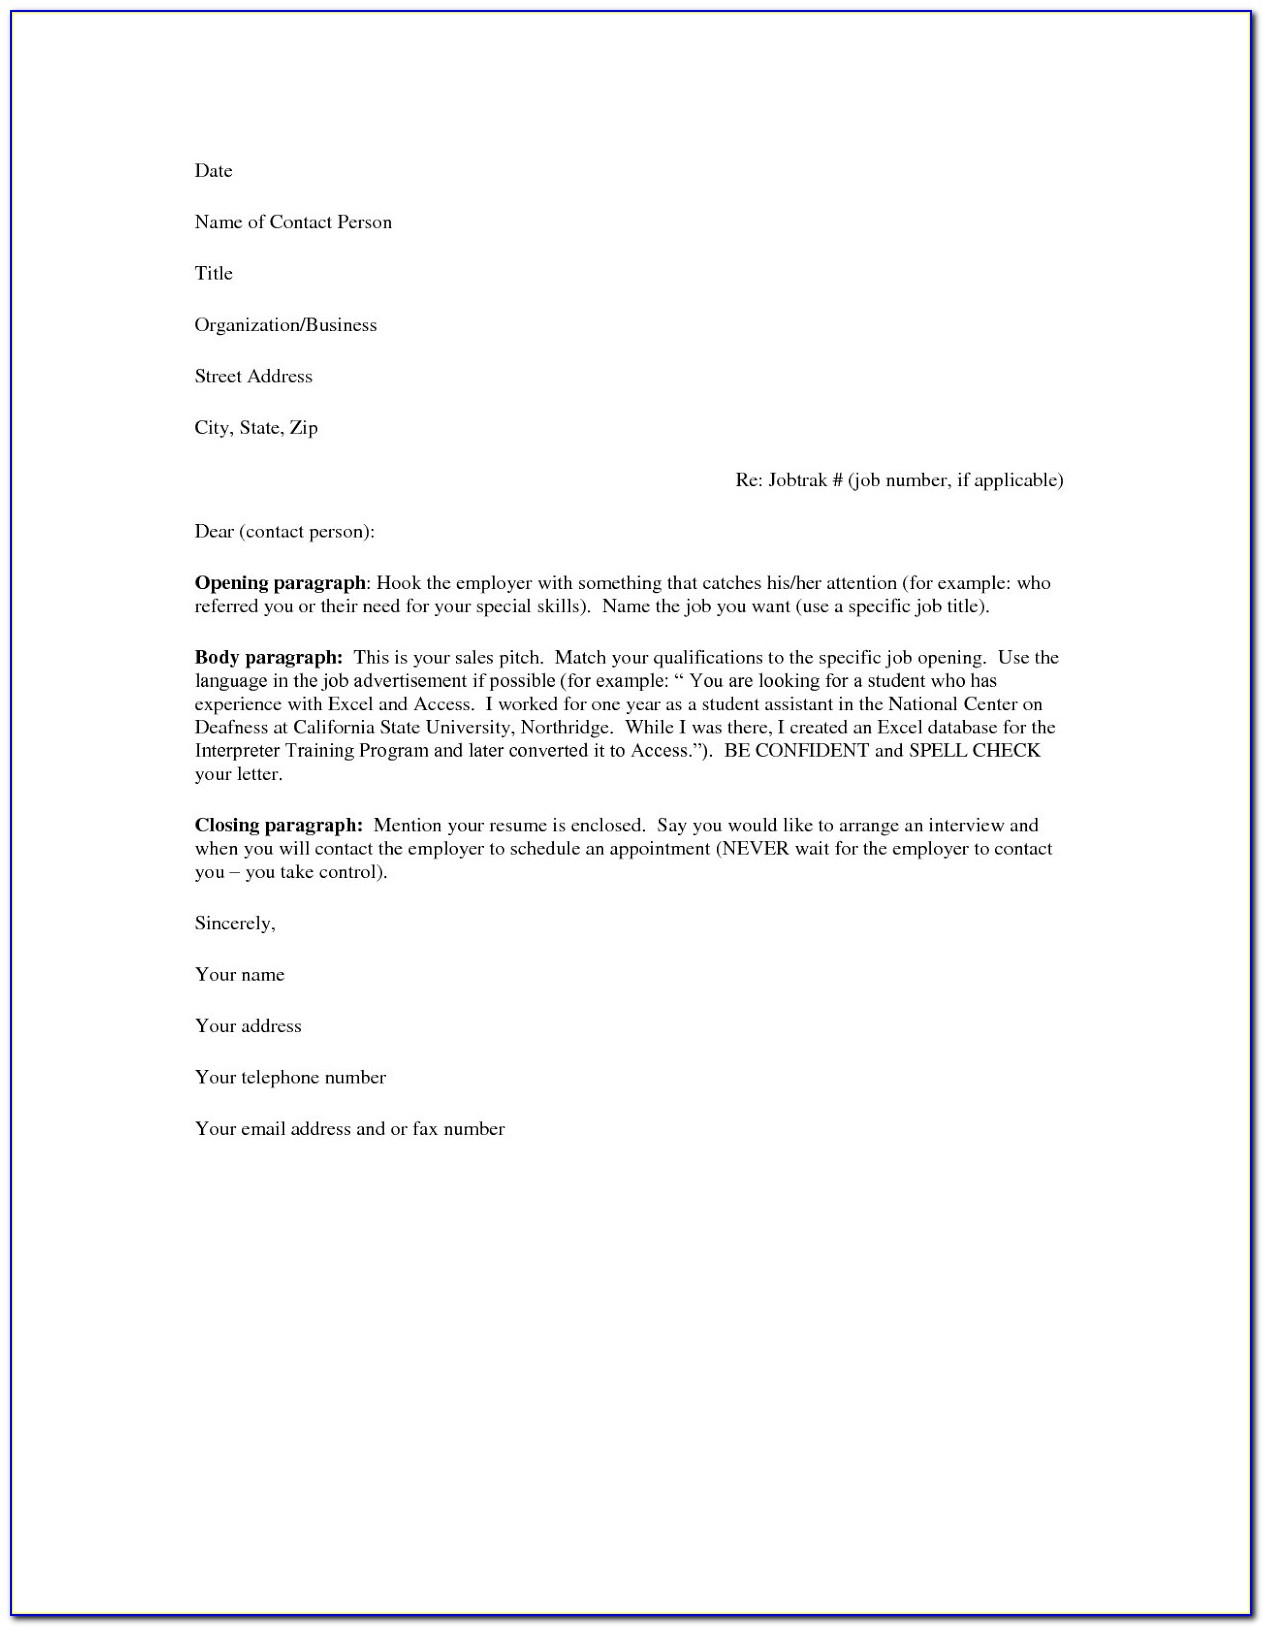 Resumes And Cover Letters Quizlet